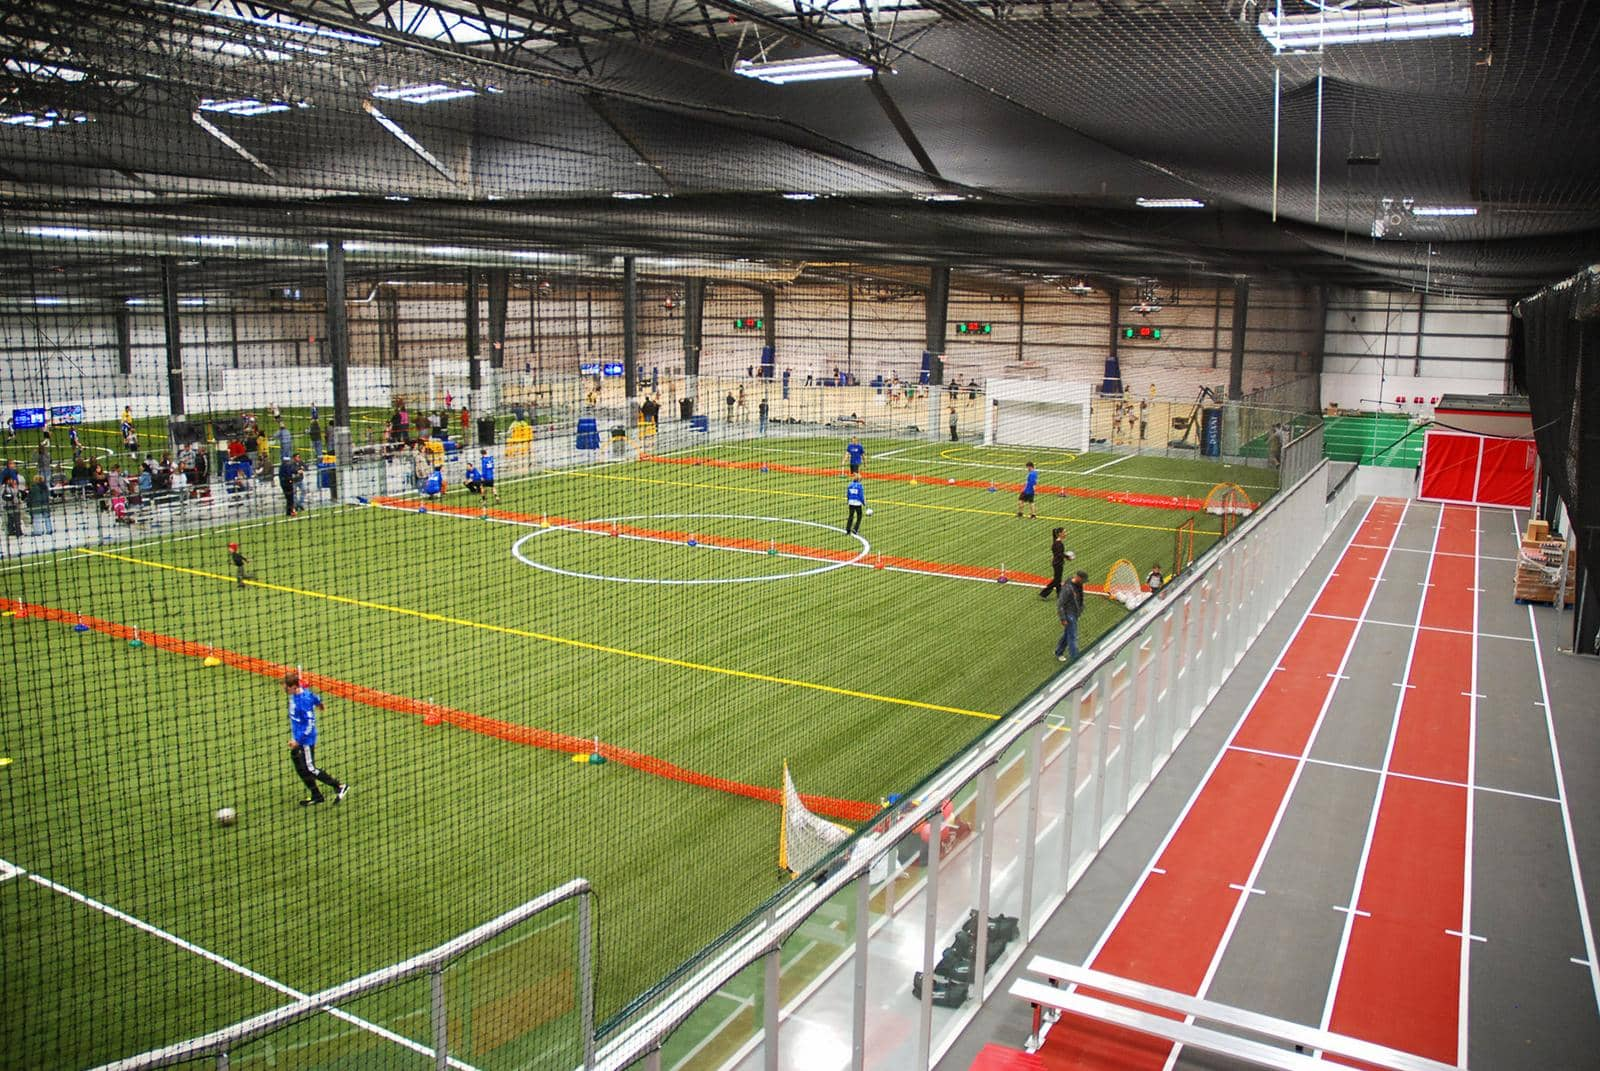 Indoor track, Scoreboards, Protective Netting